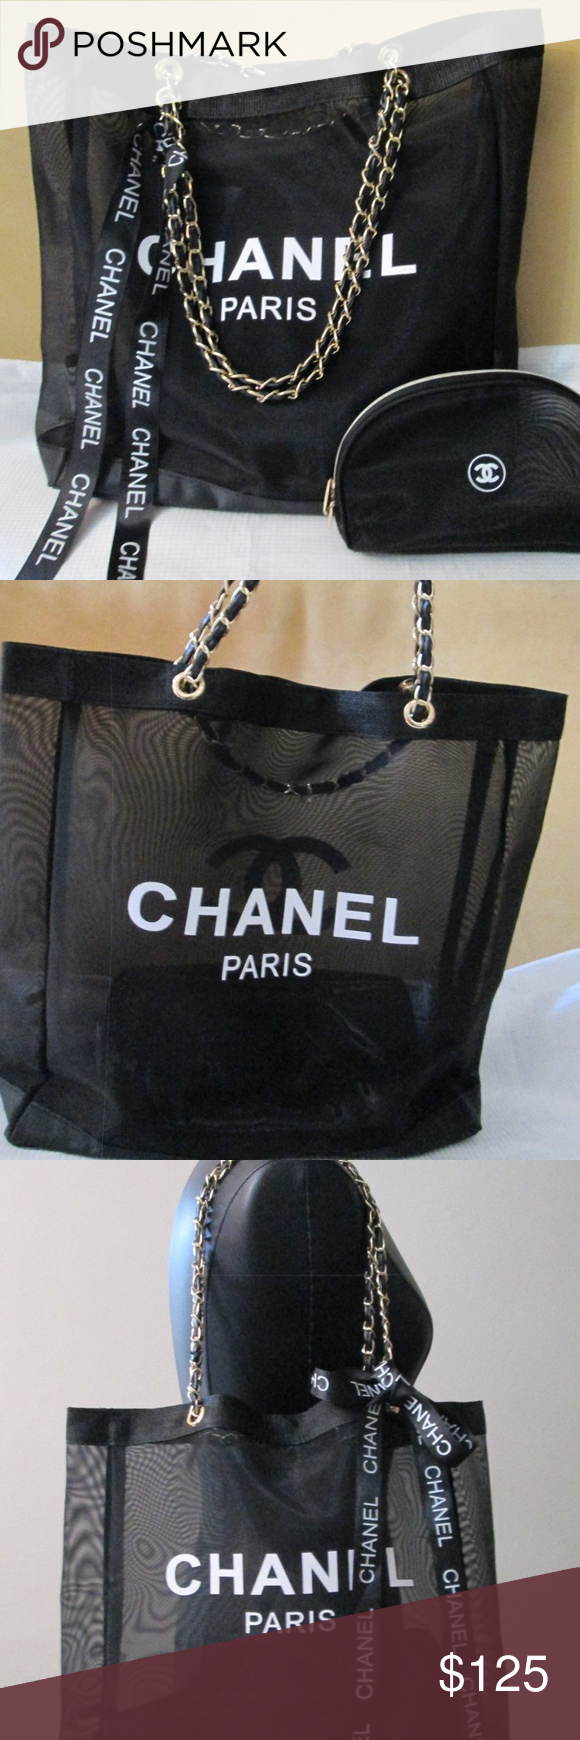 4888afede80e Chanel VIP Mesh Tote and Makeup Bag Gift Set MESH has CHANEL PARIS print in  the